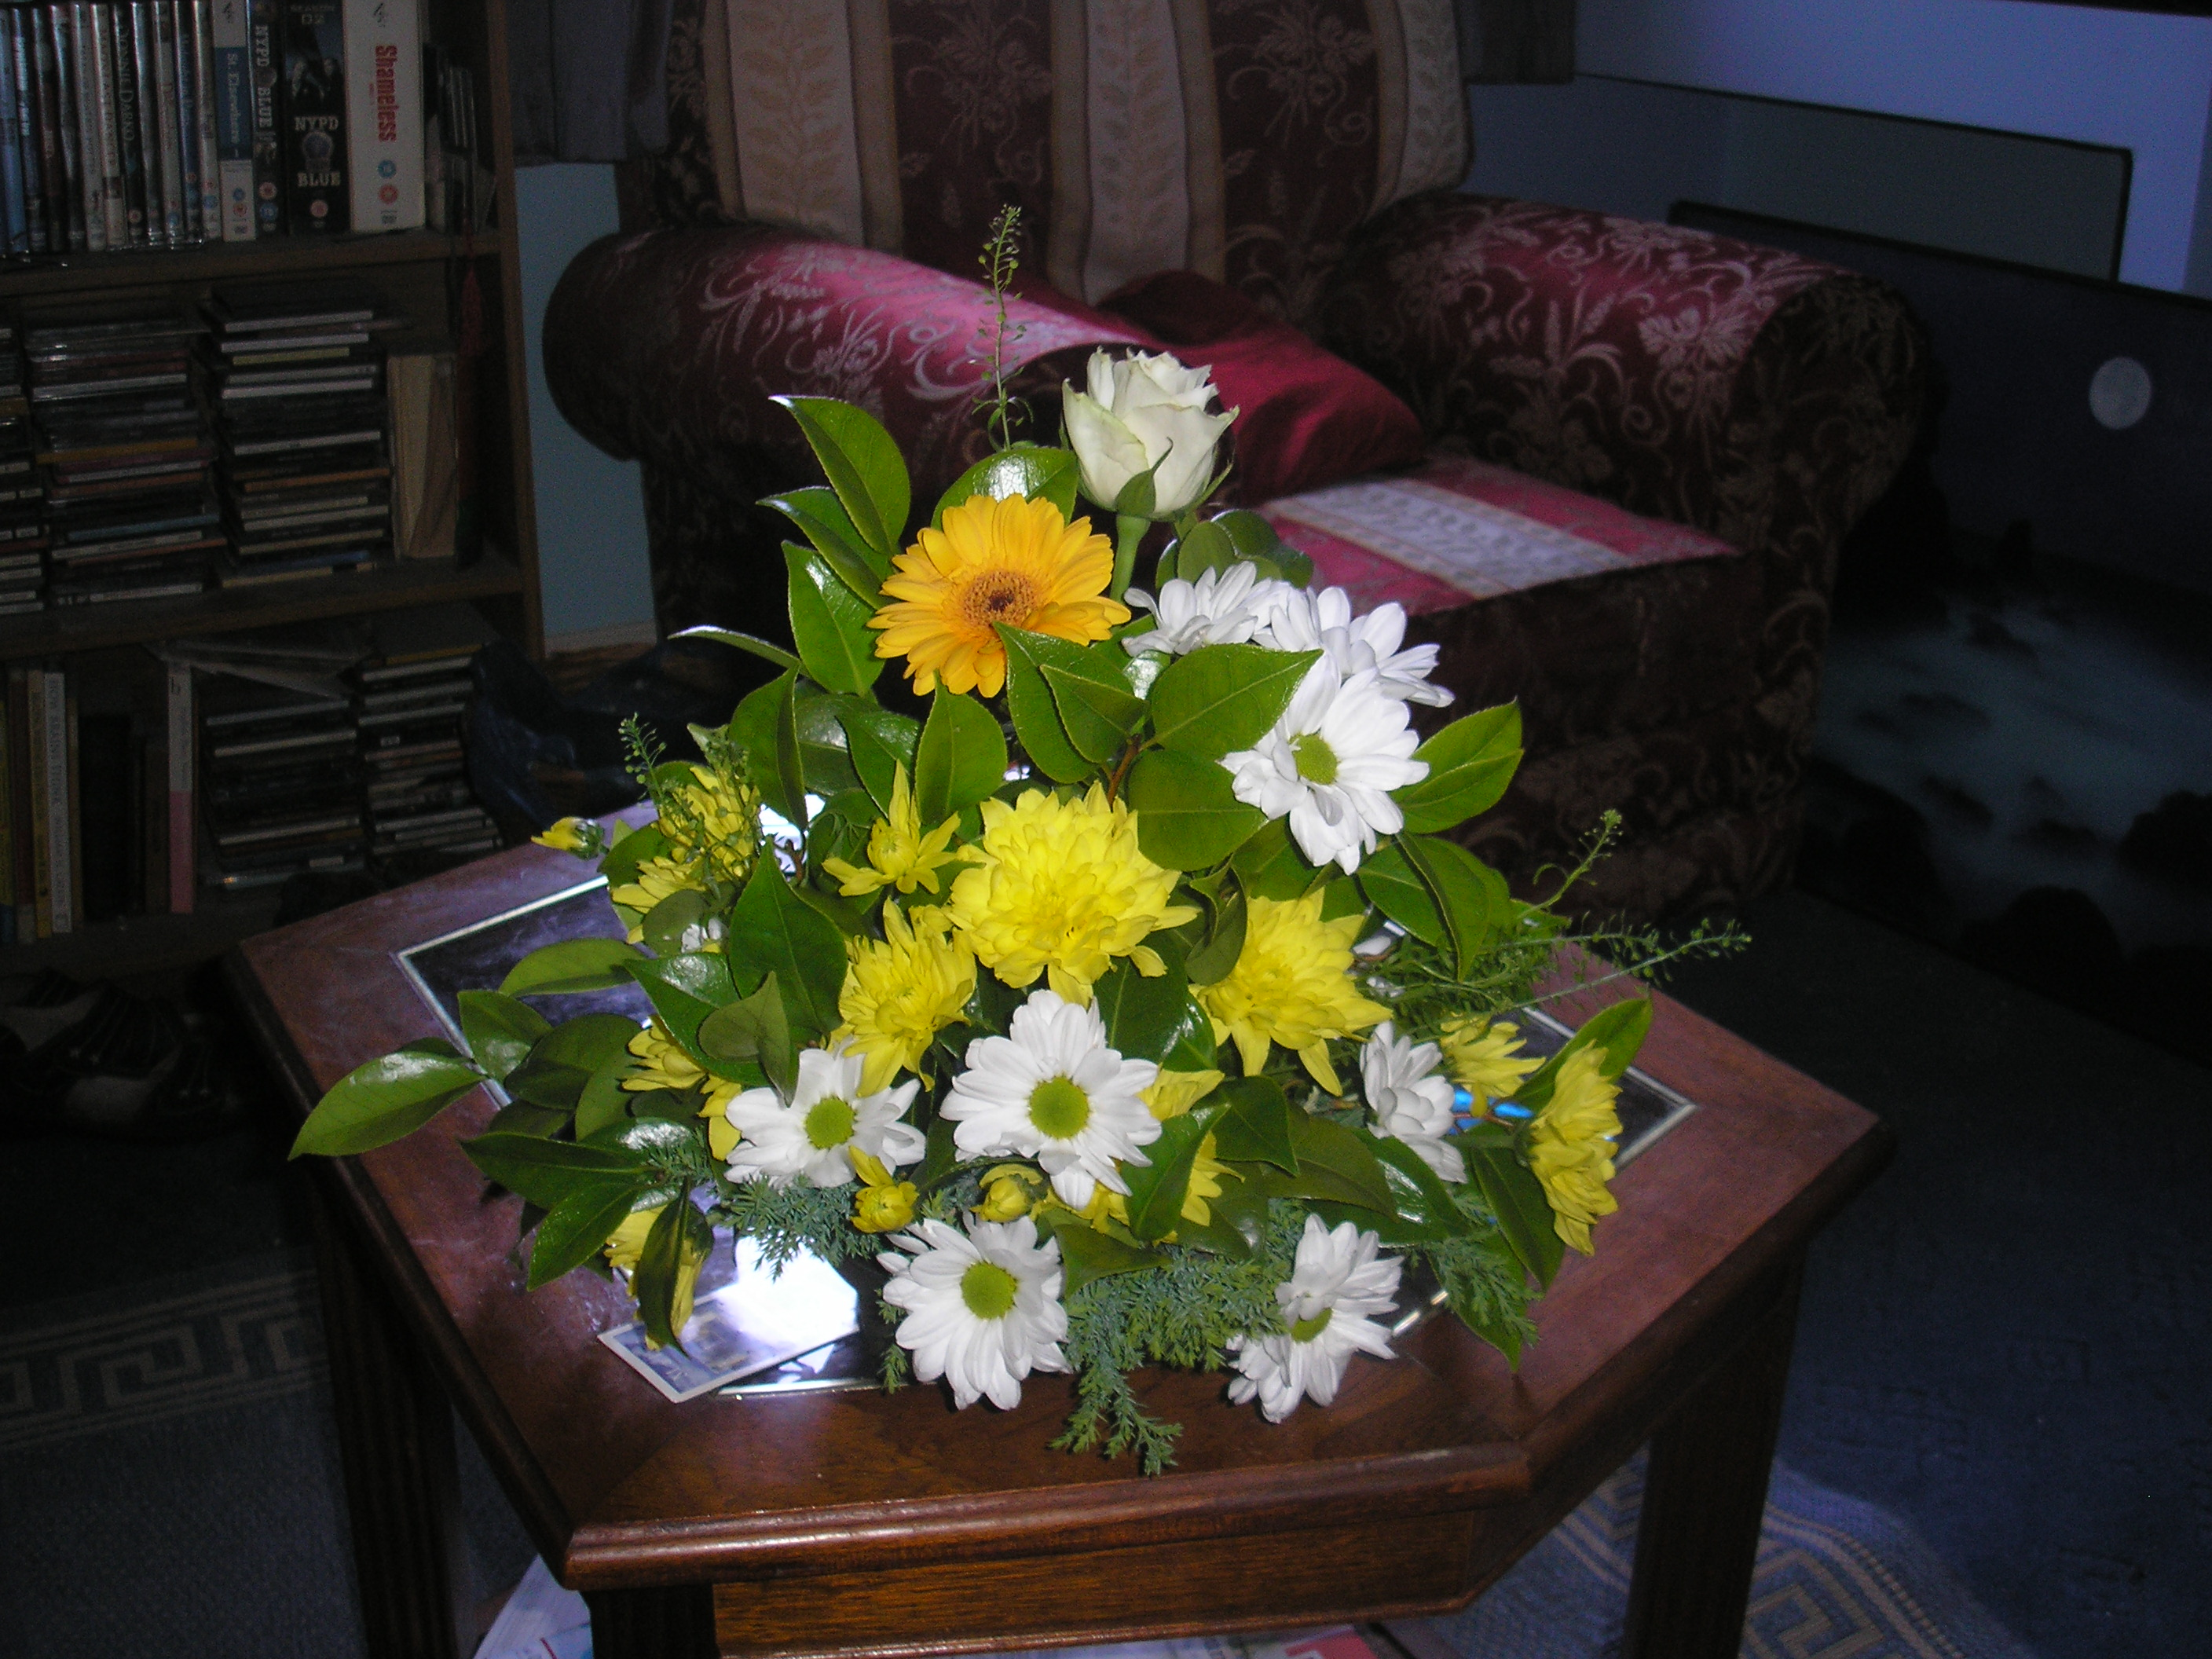 The first arrangement